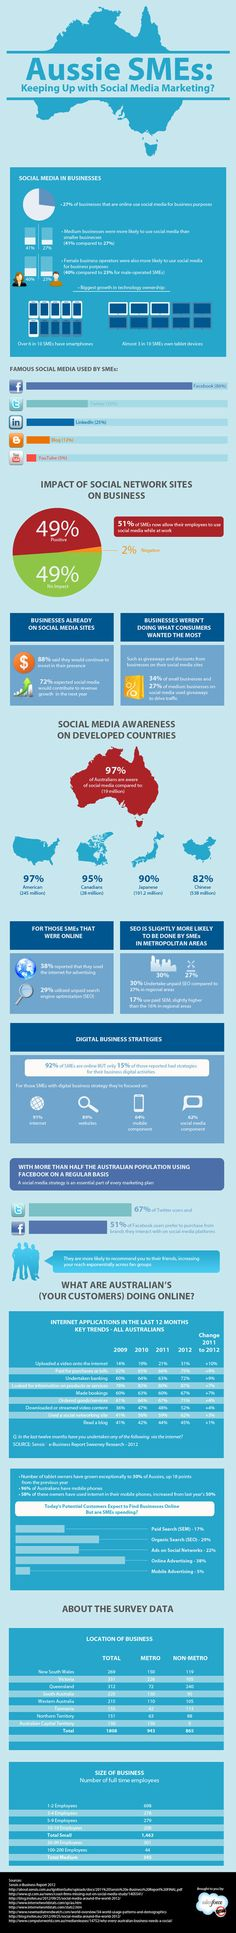 Small Australian businesses and social media [infographic] | Econsultancy